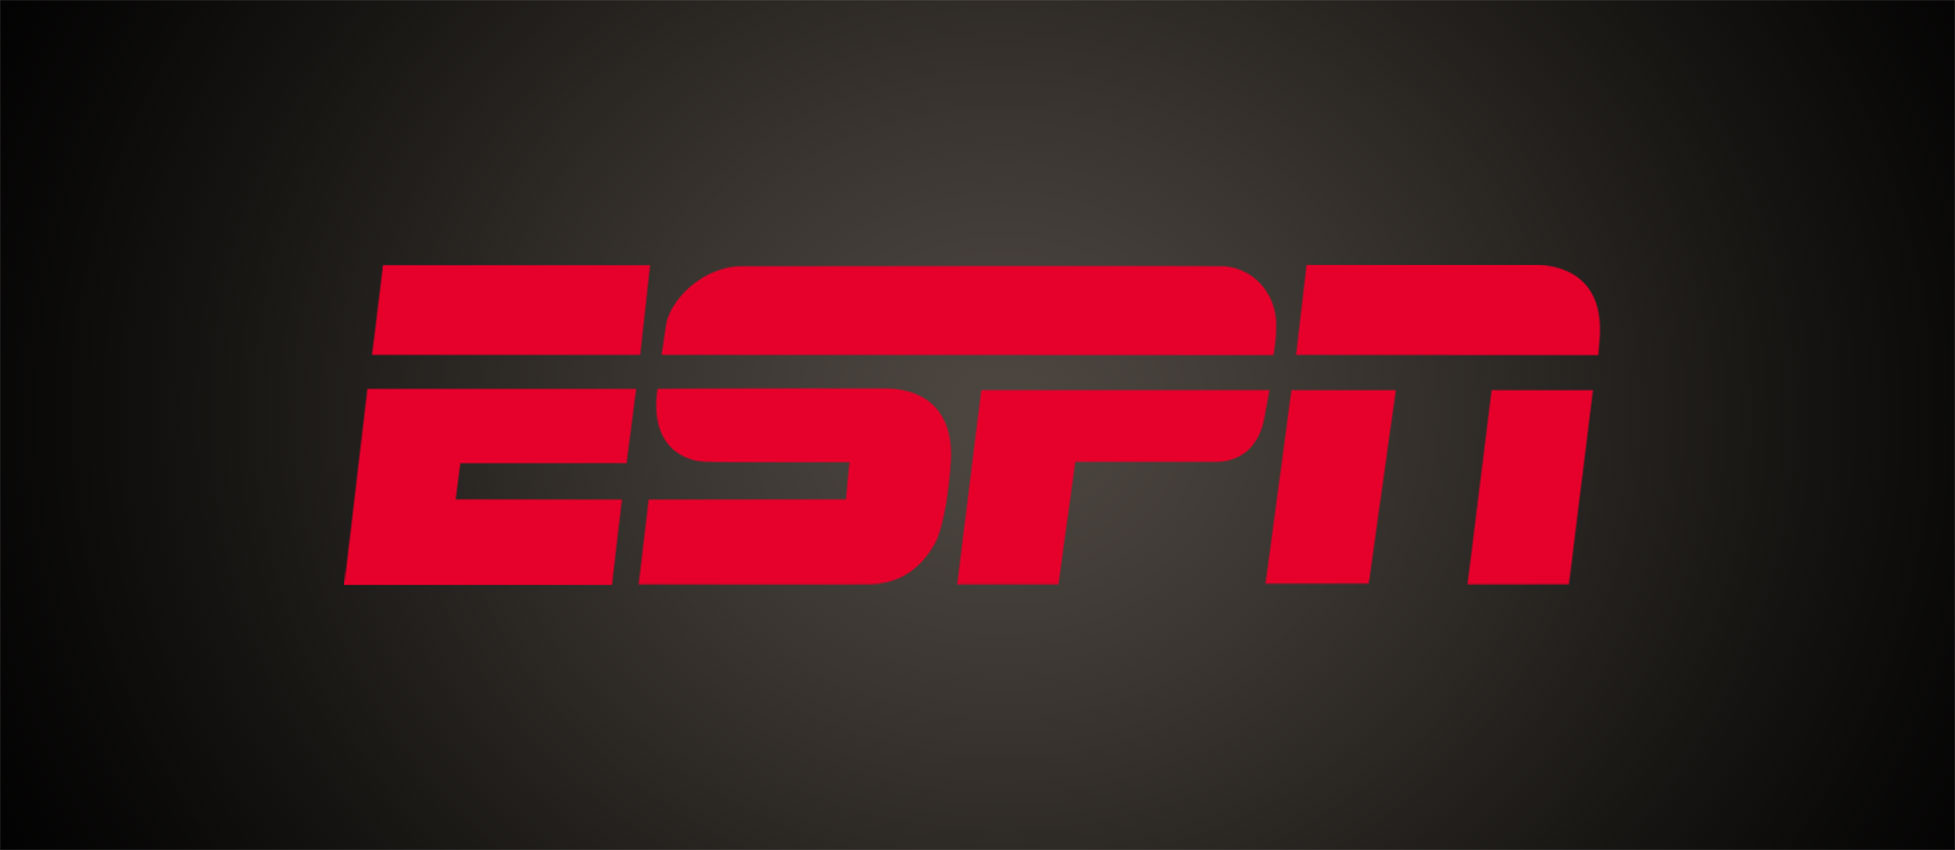 Espn College Scoreboard Live | All Basketball Scores Info